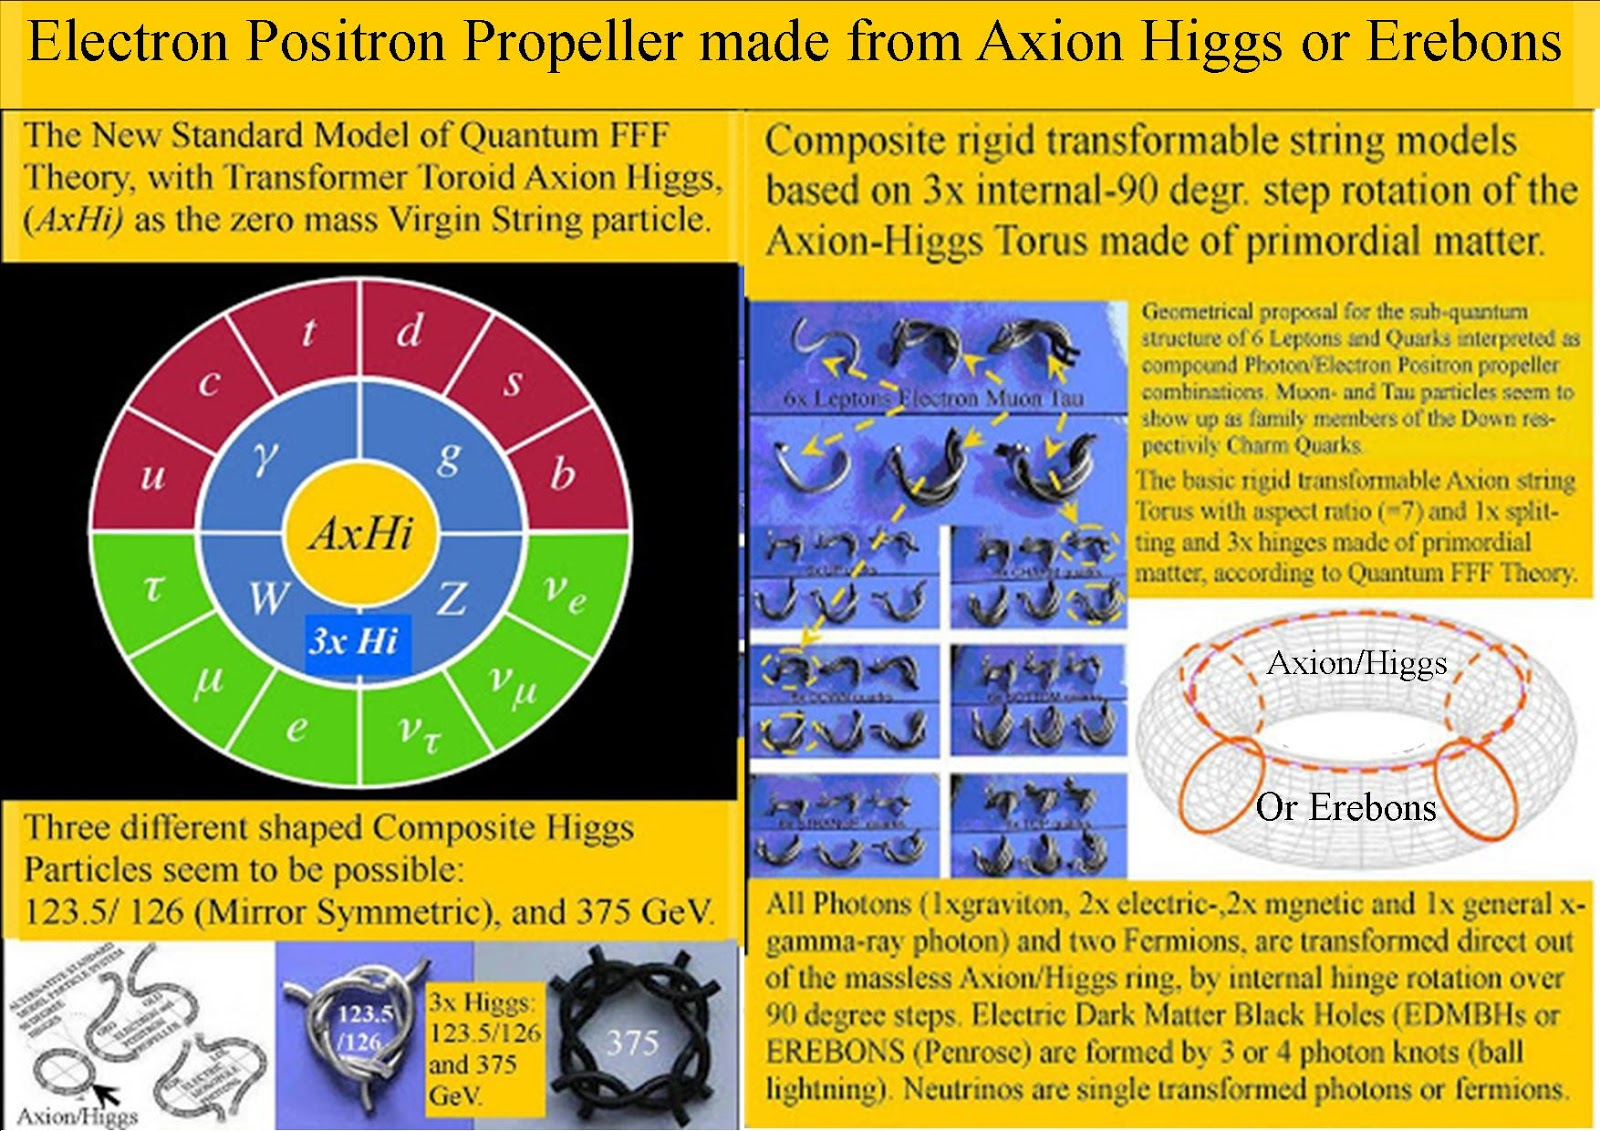 black hole horizon only photon gluons and axion higgs erebons see also http vixra org pdf 1103 0002v4 pdf and http vixra org author leo vuyk [ 1600 x 1131 Pixel ]